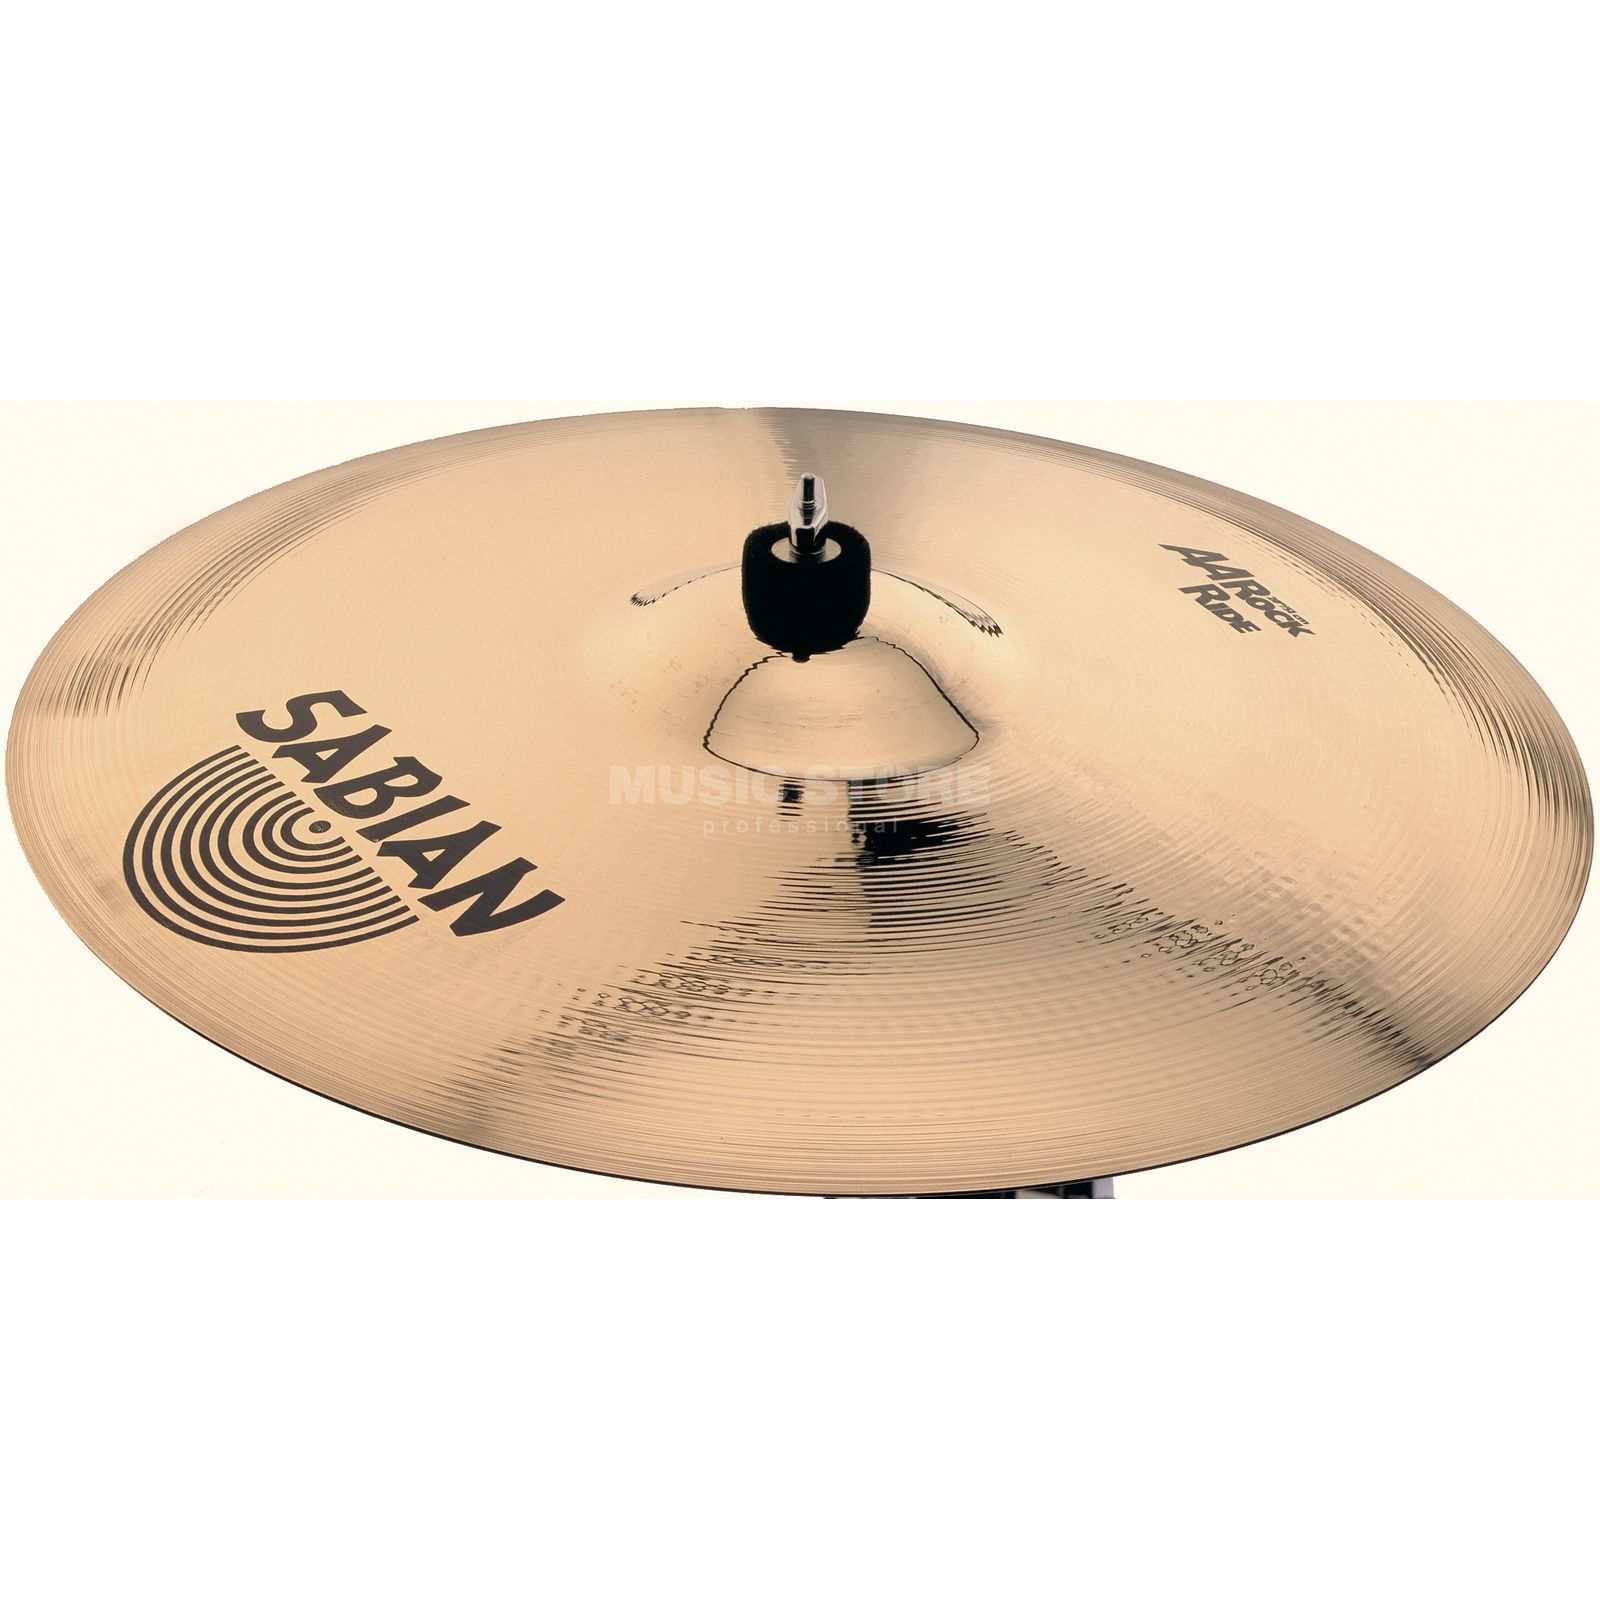 "Sabian AA Rock Ride 21"" Brilliant Finish Zdjęcie produktu"